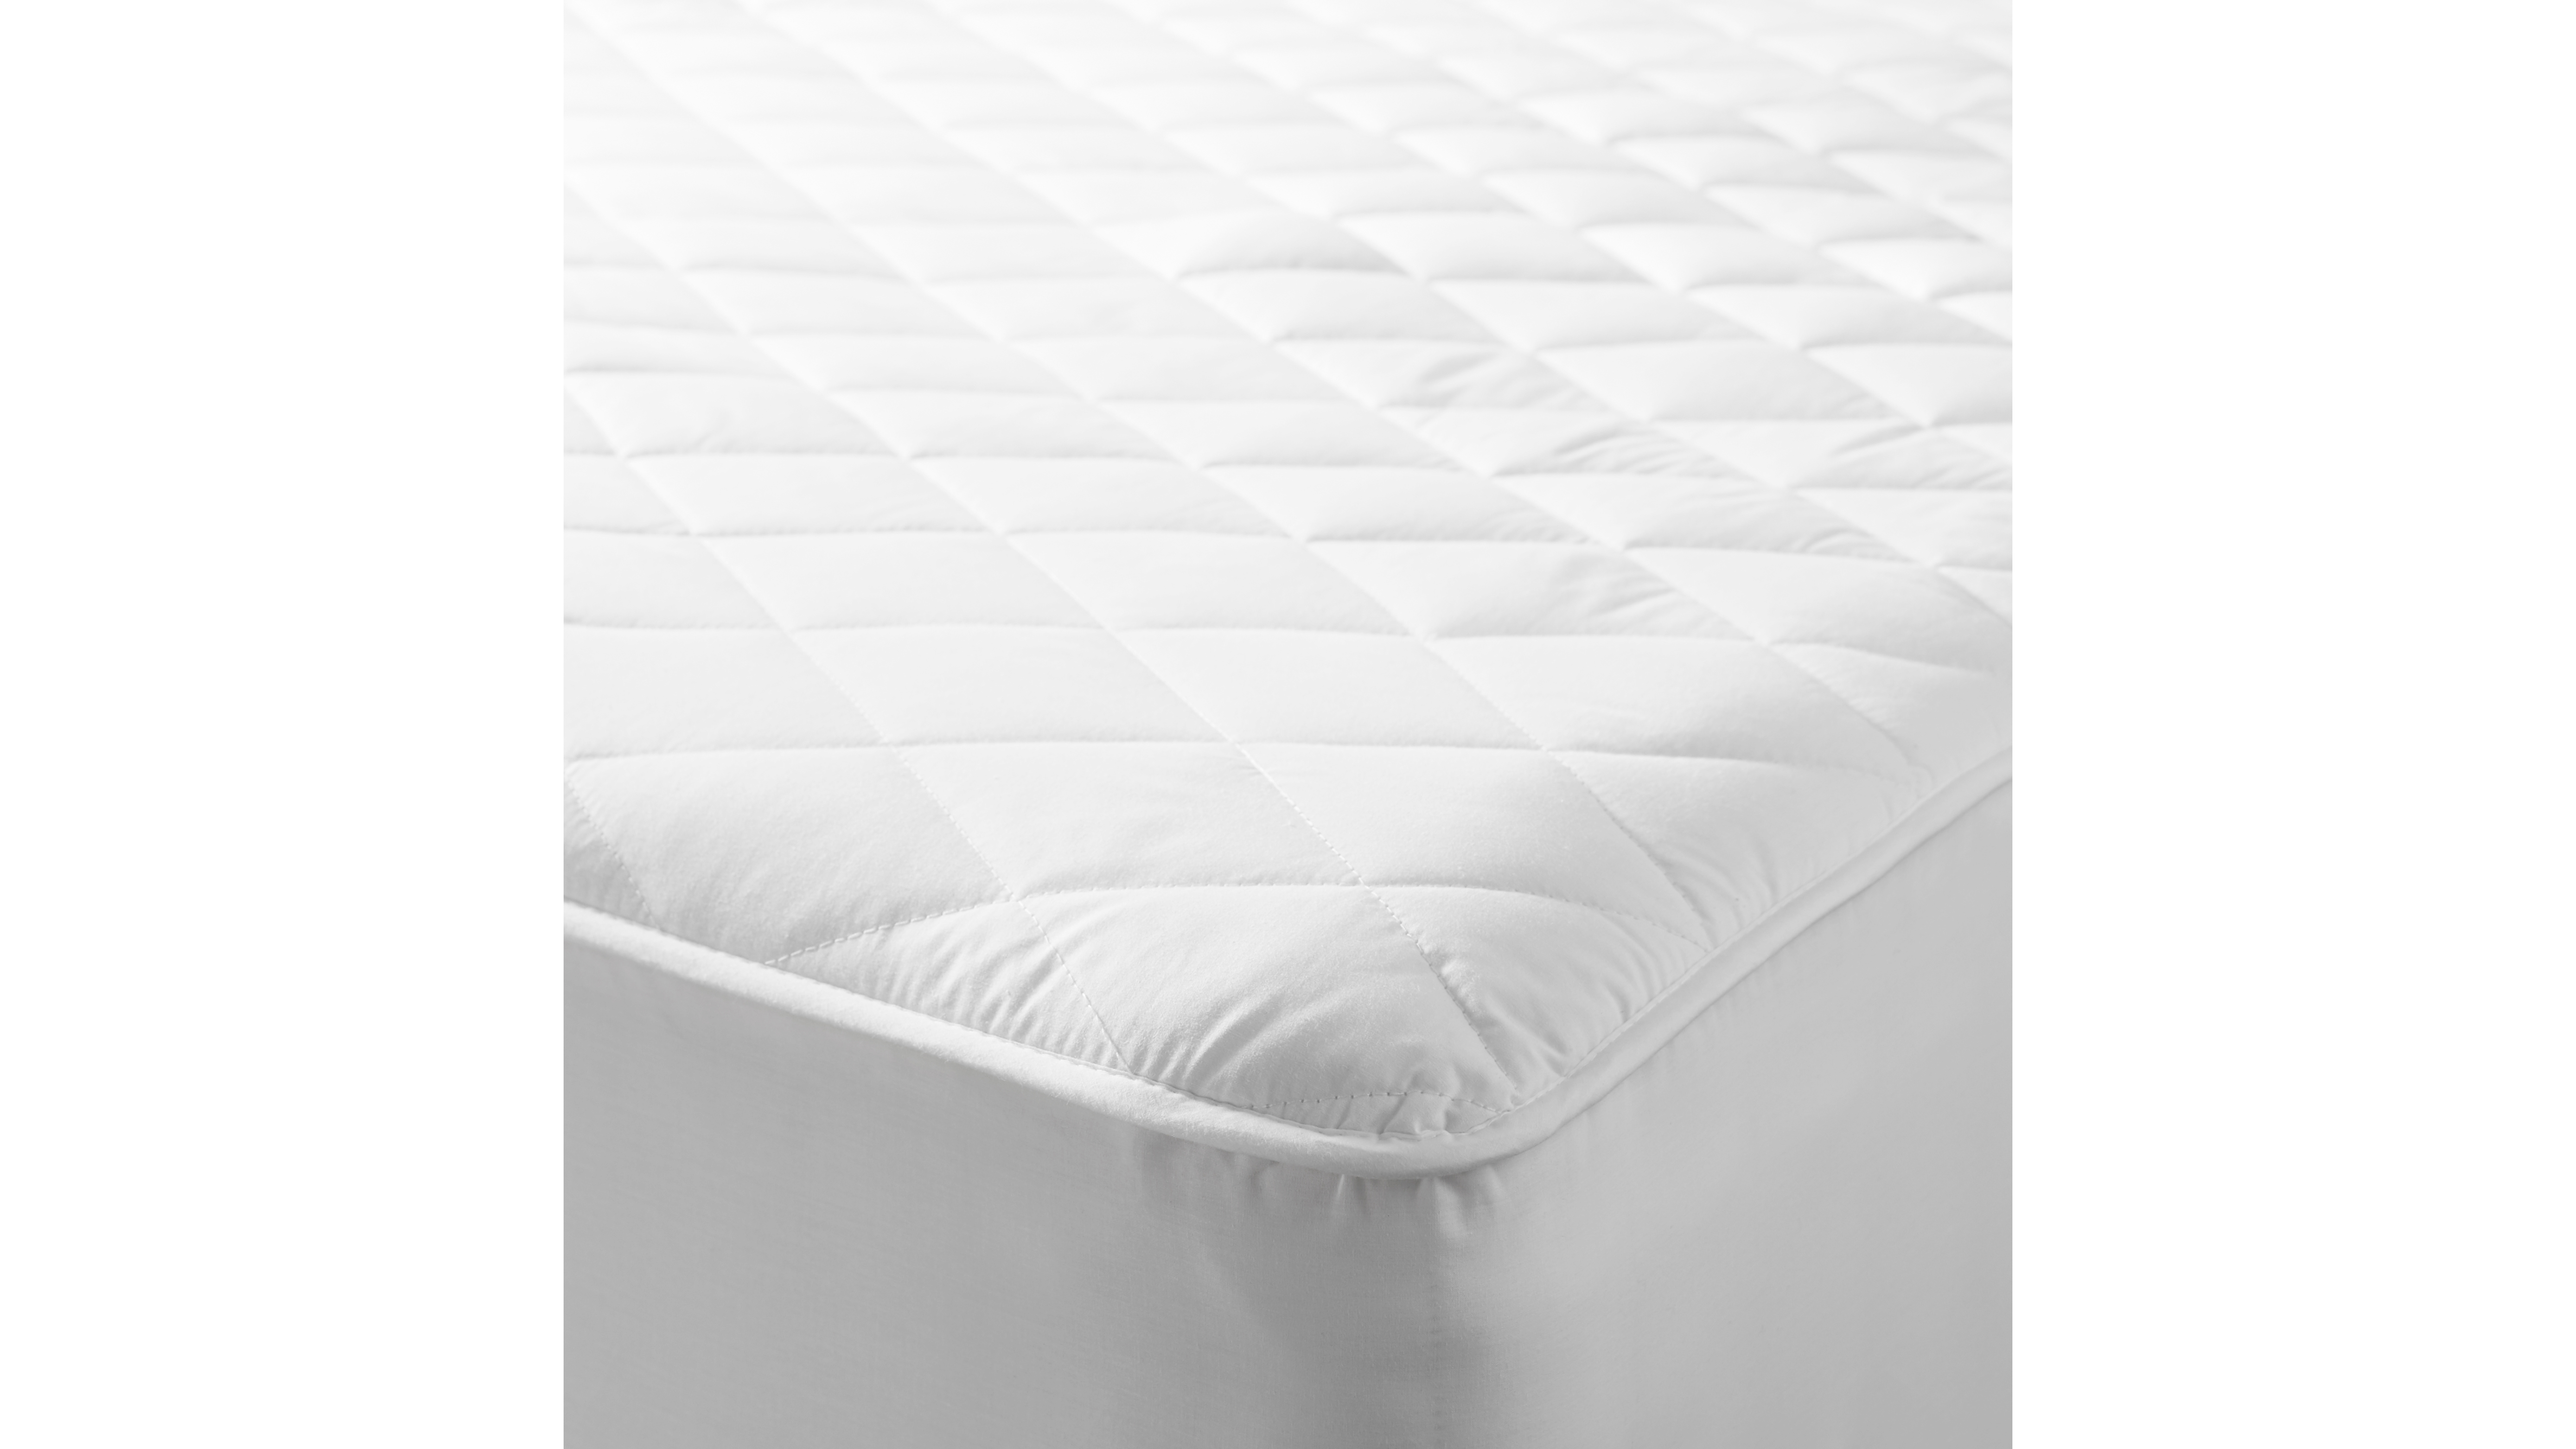 to mattress latex polyurethane material toxic cover best topper dunlopillo pad where jamison foam mattresses organic profile electric the pure sleep high double size natural king place pillow futon company quality non queen full costco memory talalay php brands all sale buy